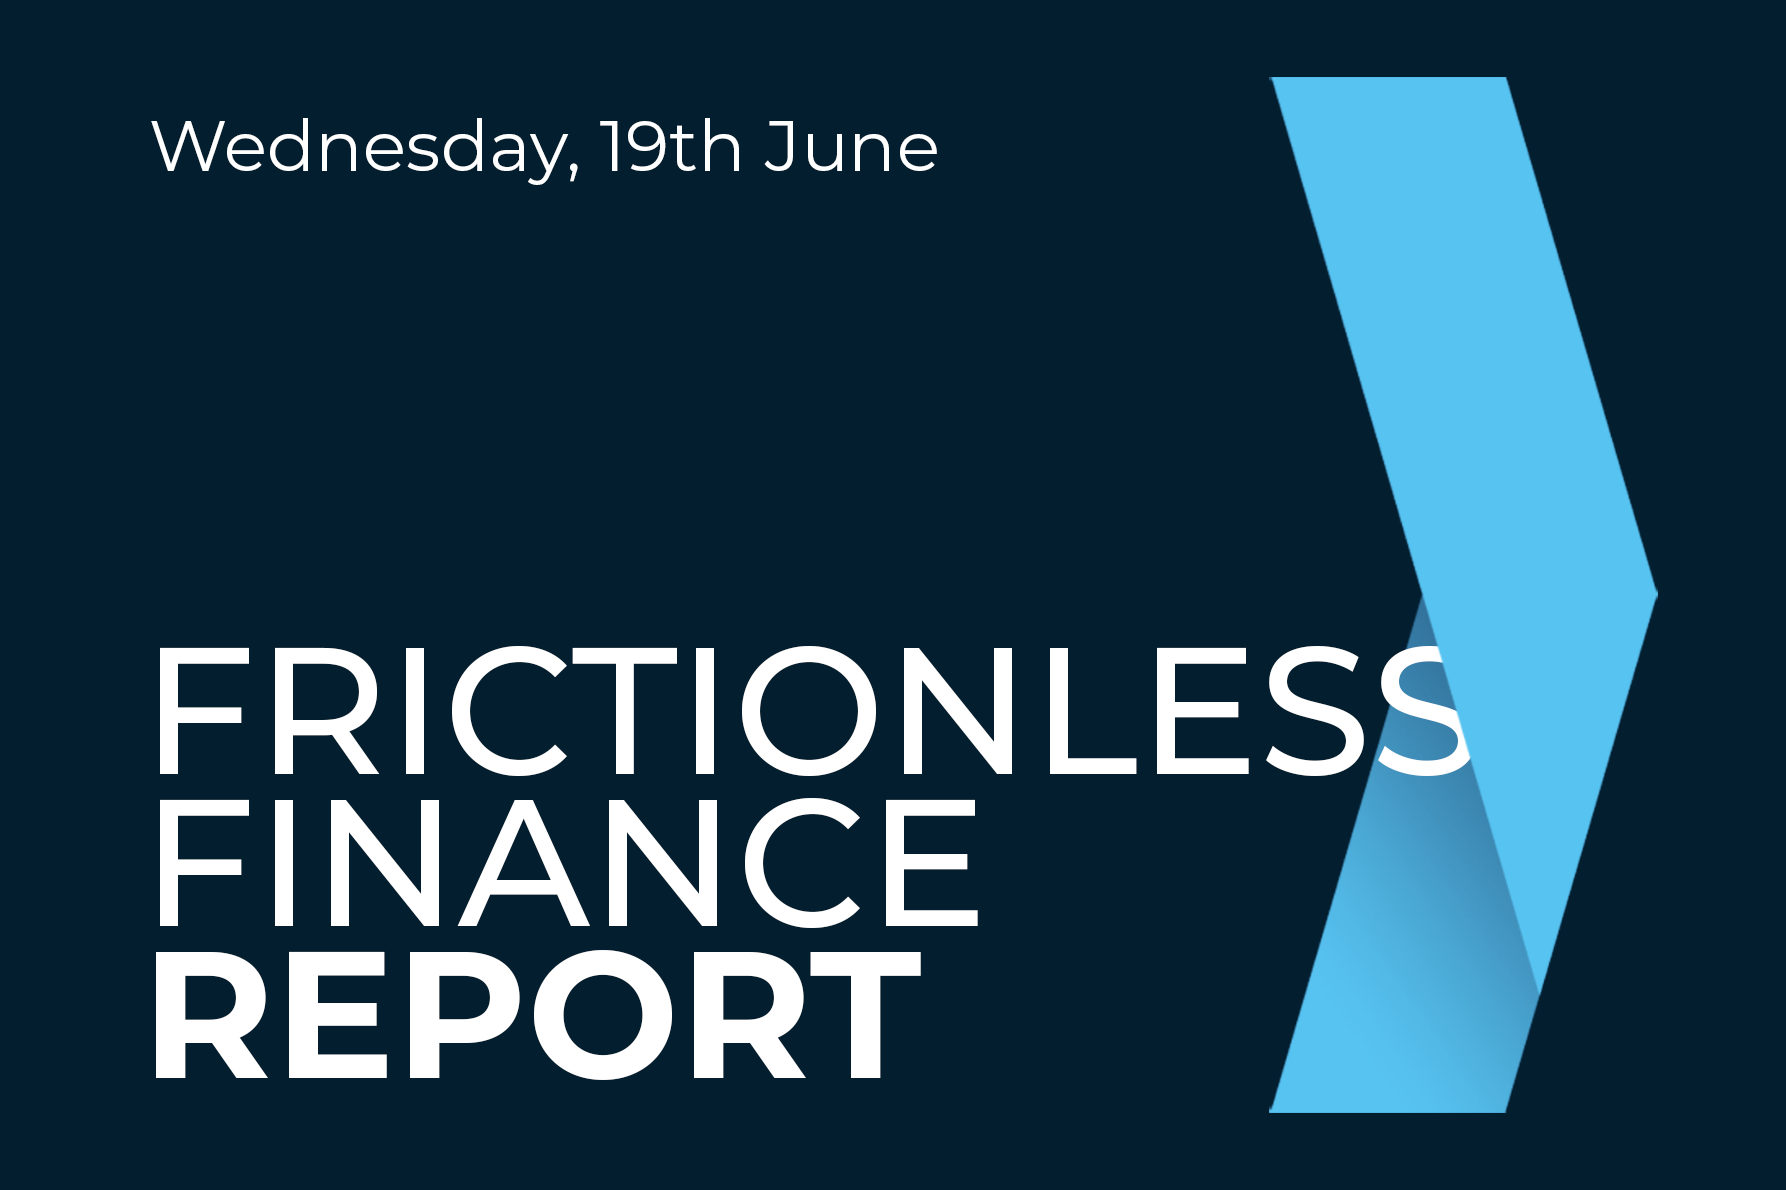 Frictionless Finance Report - Wednesday 19th June